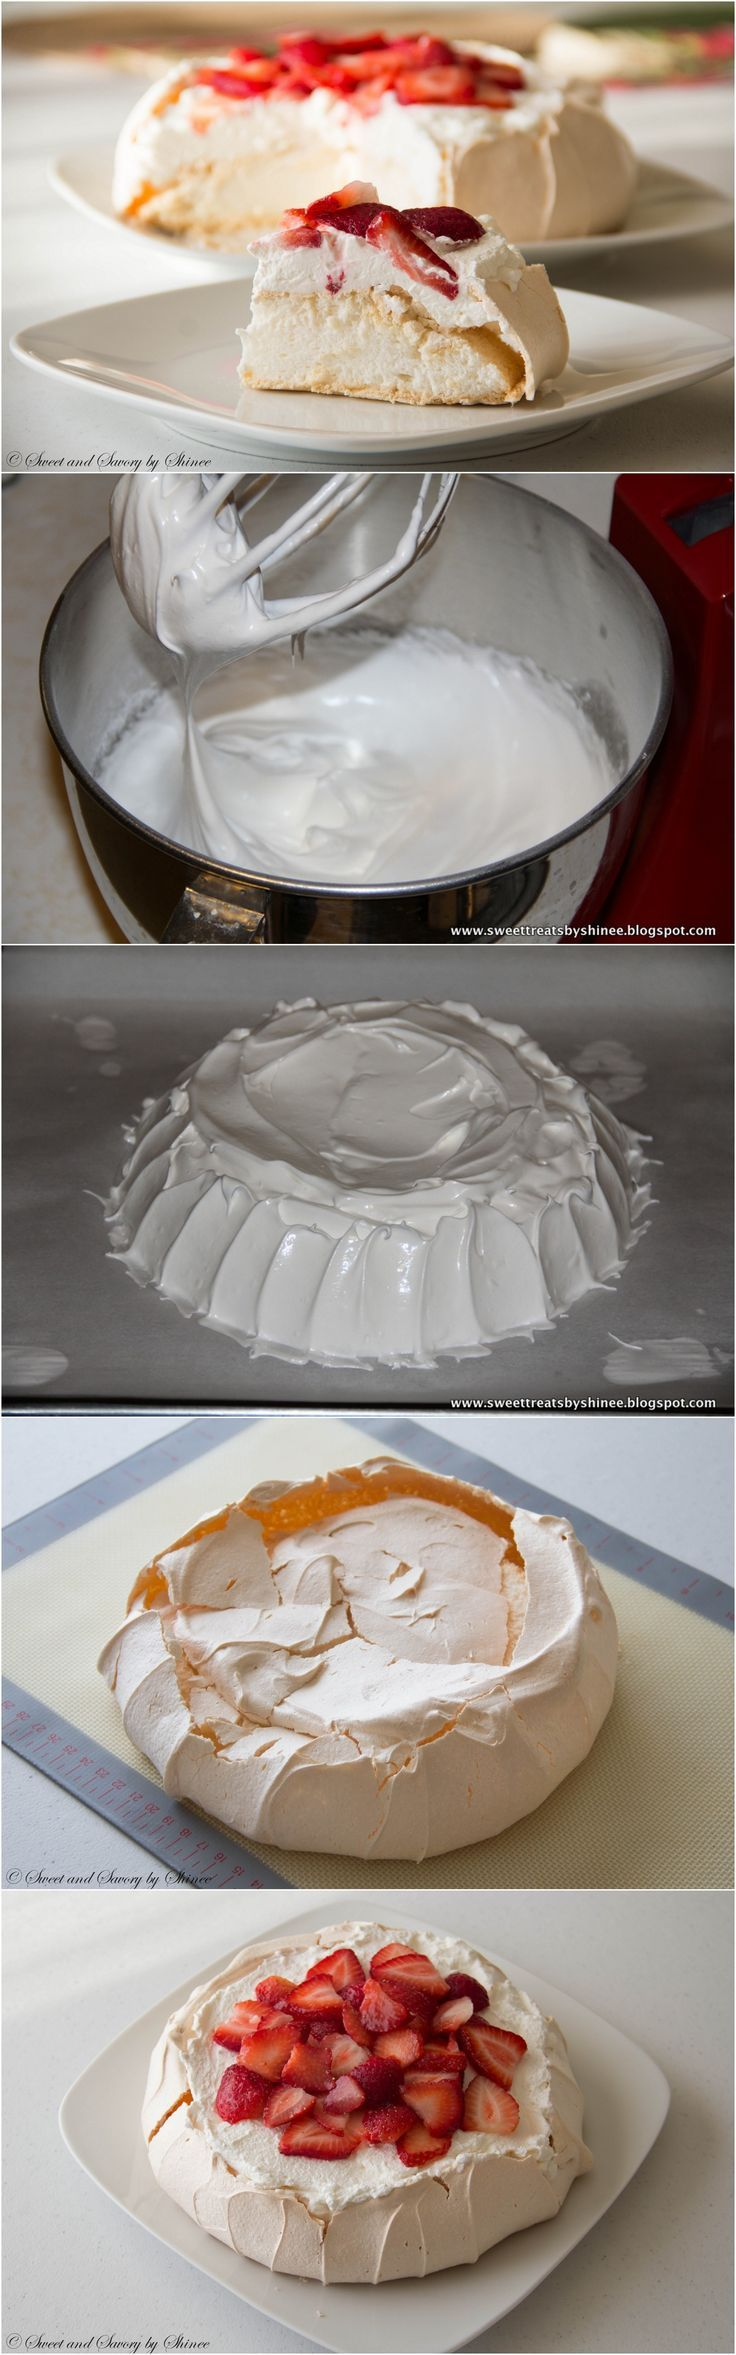 Airy, light and absolutely divine dessert that you will be making over and over again.